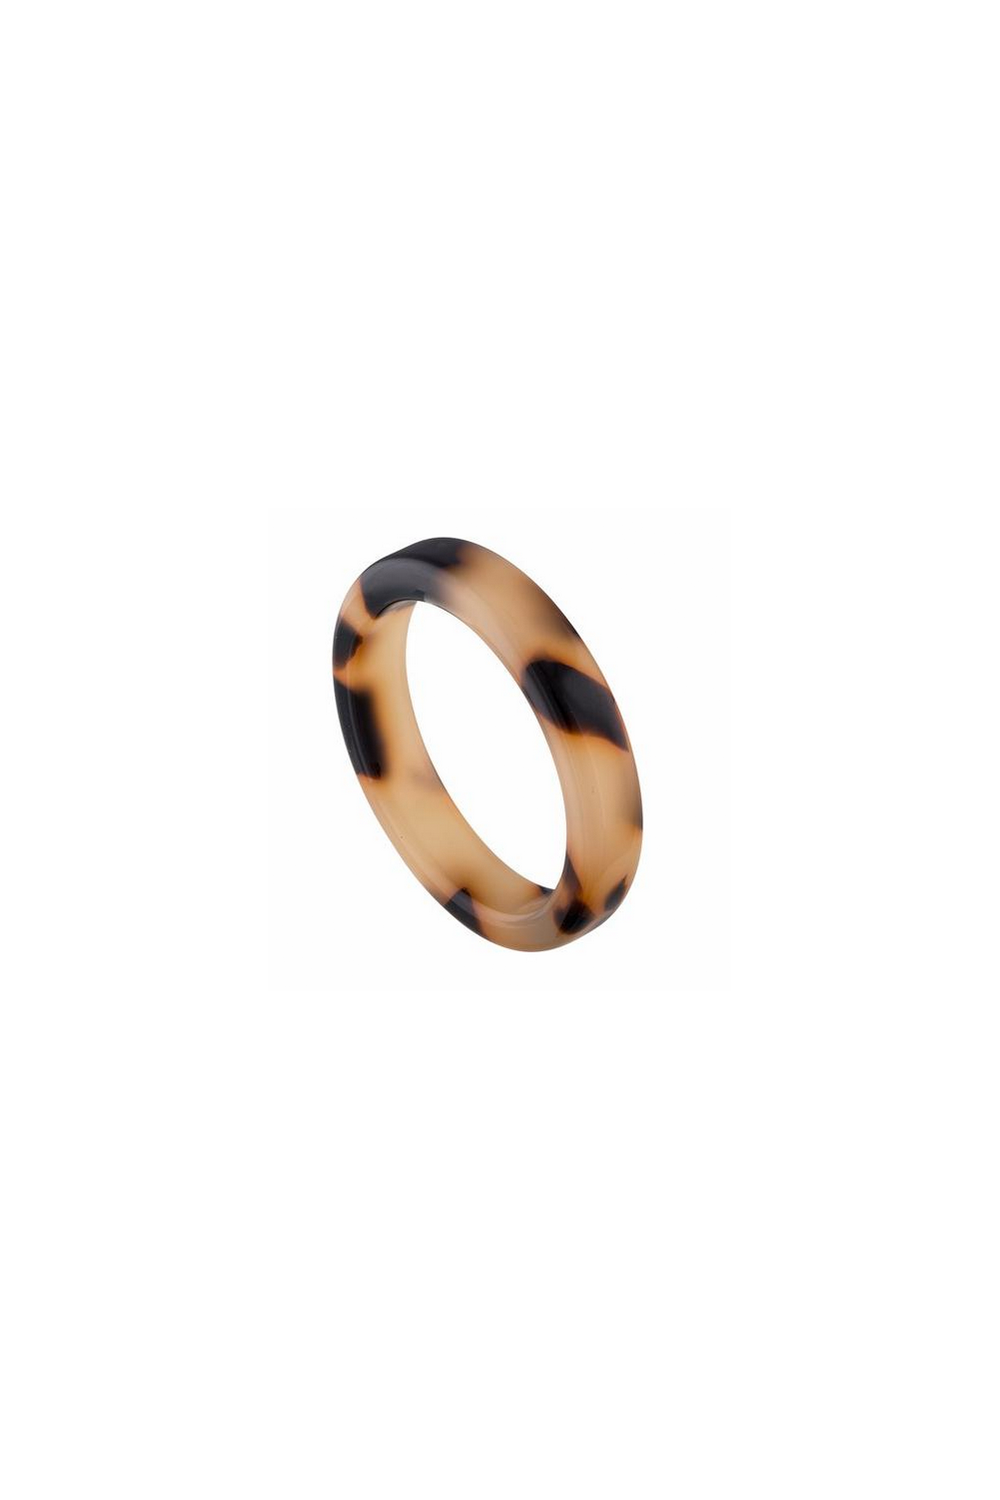 Machete Thin Stack Ring in Blonde Tortoise